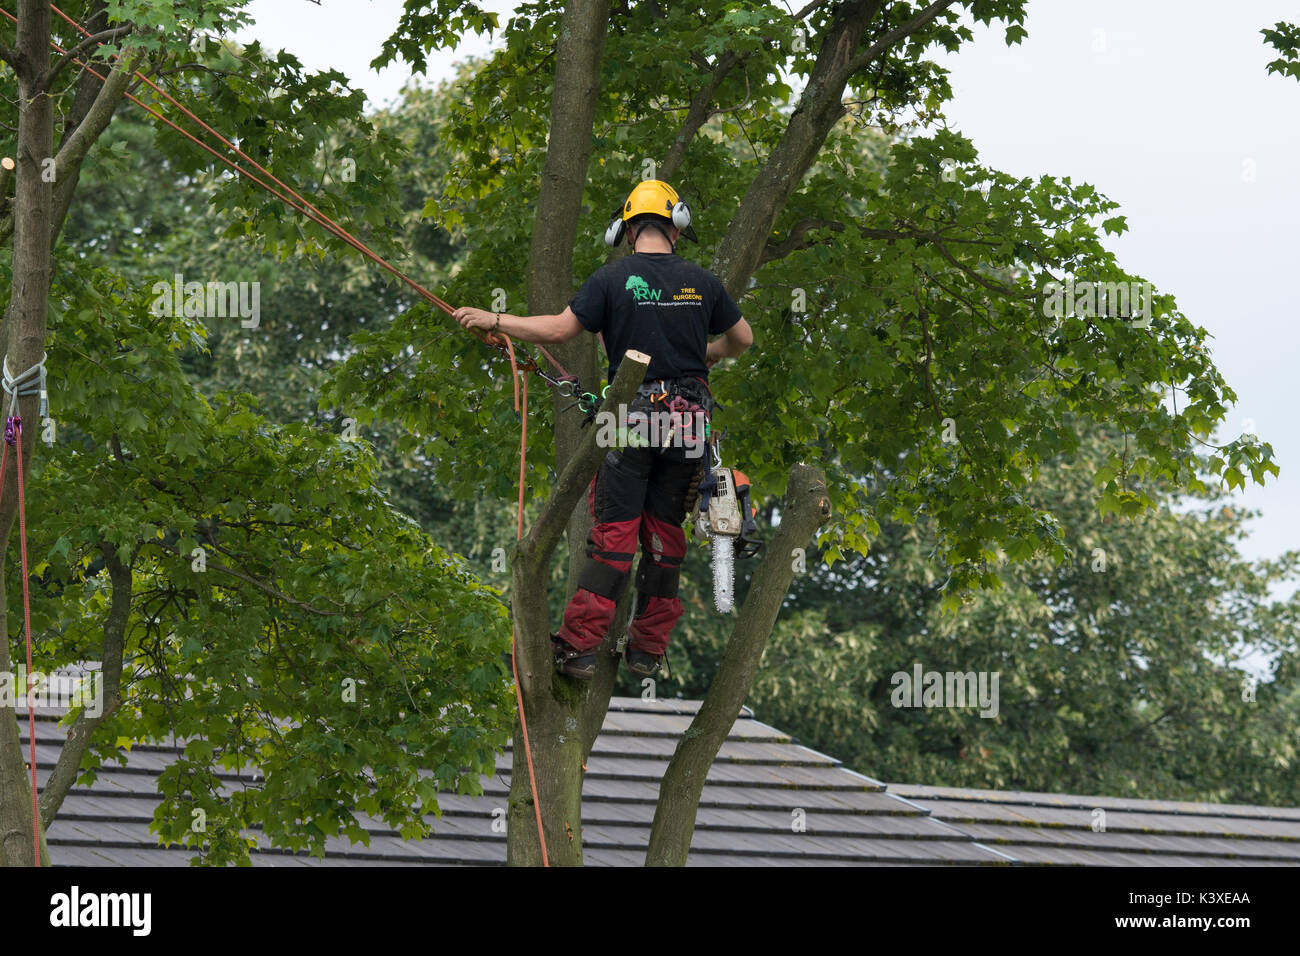 Tree surgeon working in protective gear, using climbing ropes for safety & with chainsaw, is high in branches of garden tree - Yorkshire, England, UK. - Stock Image